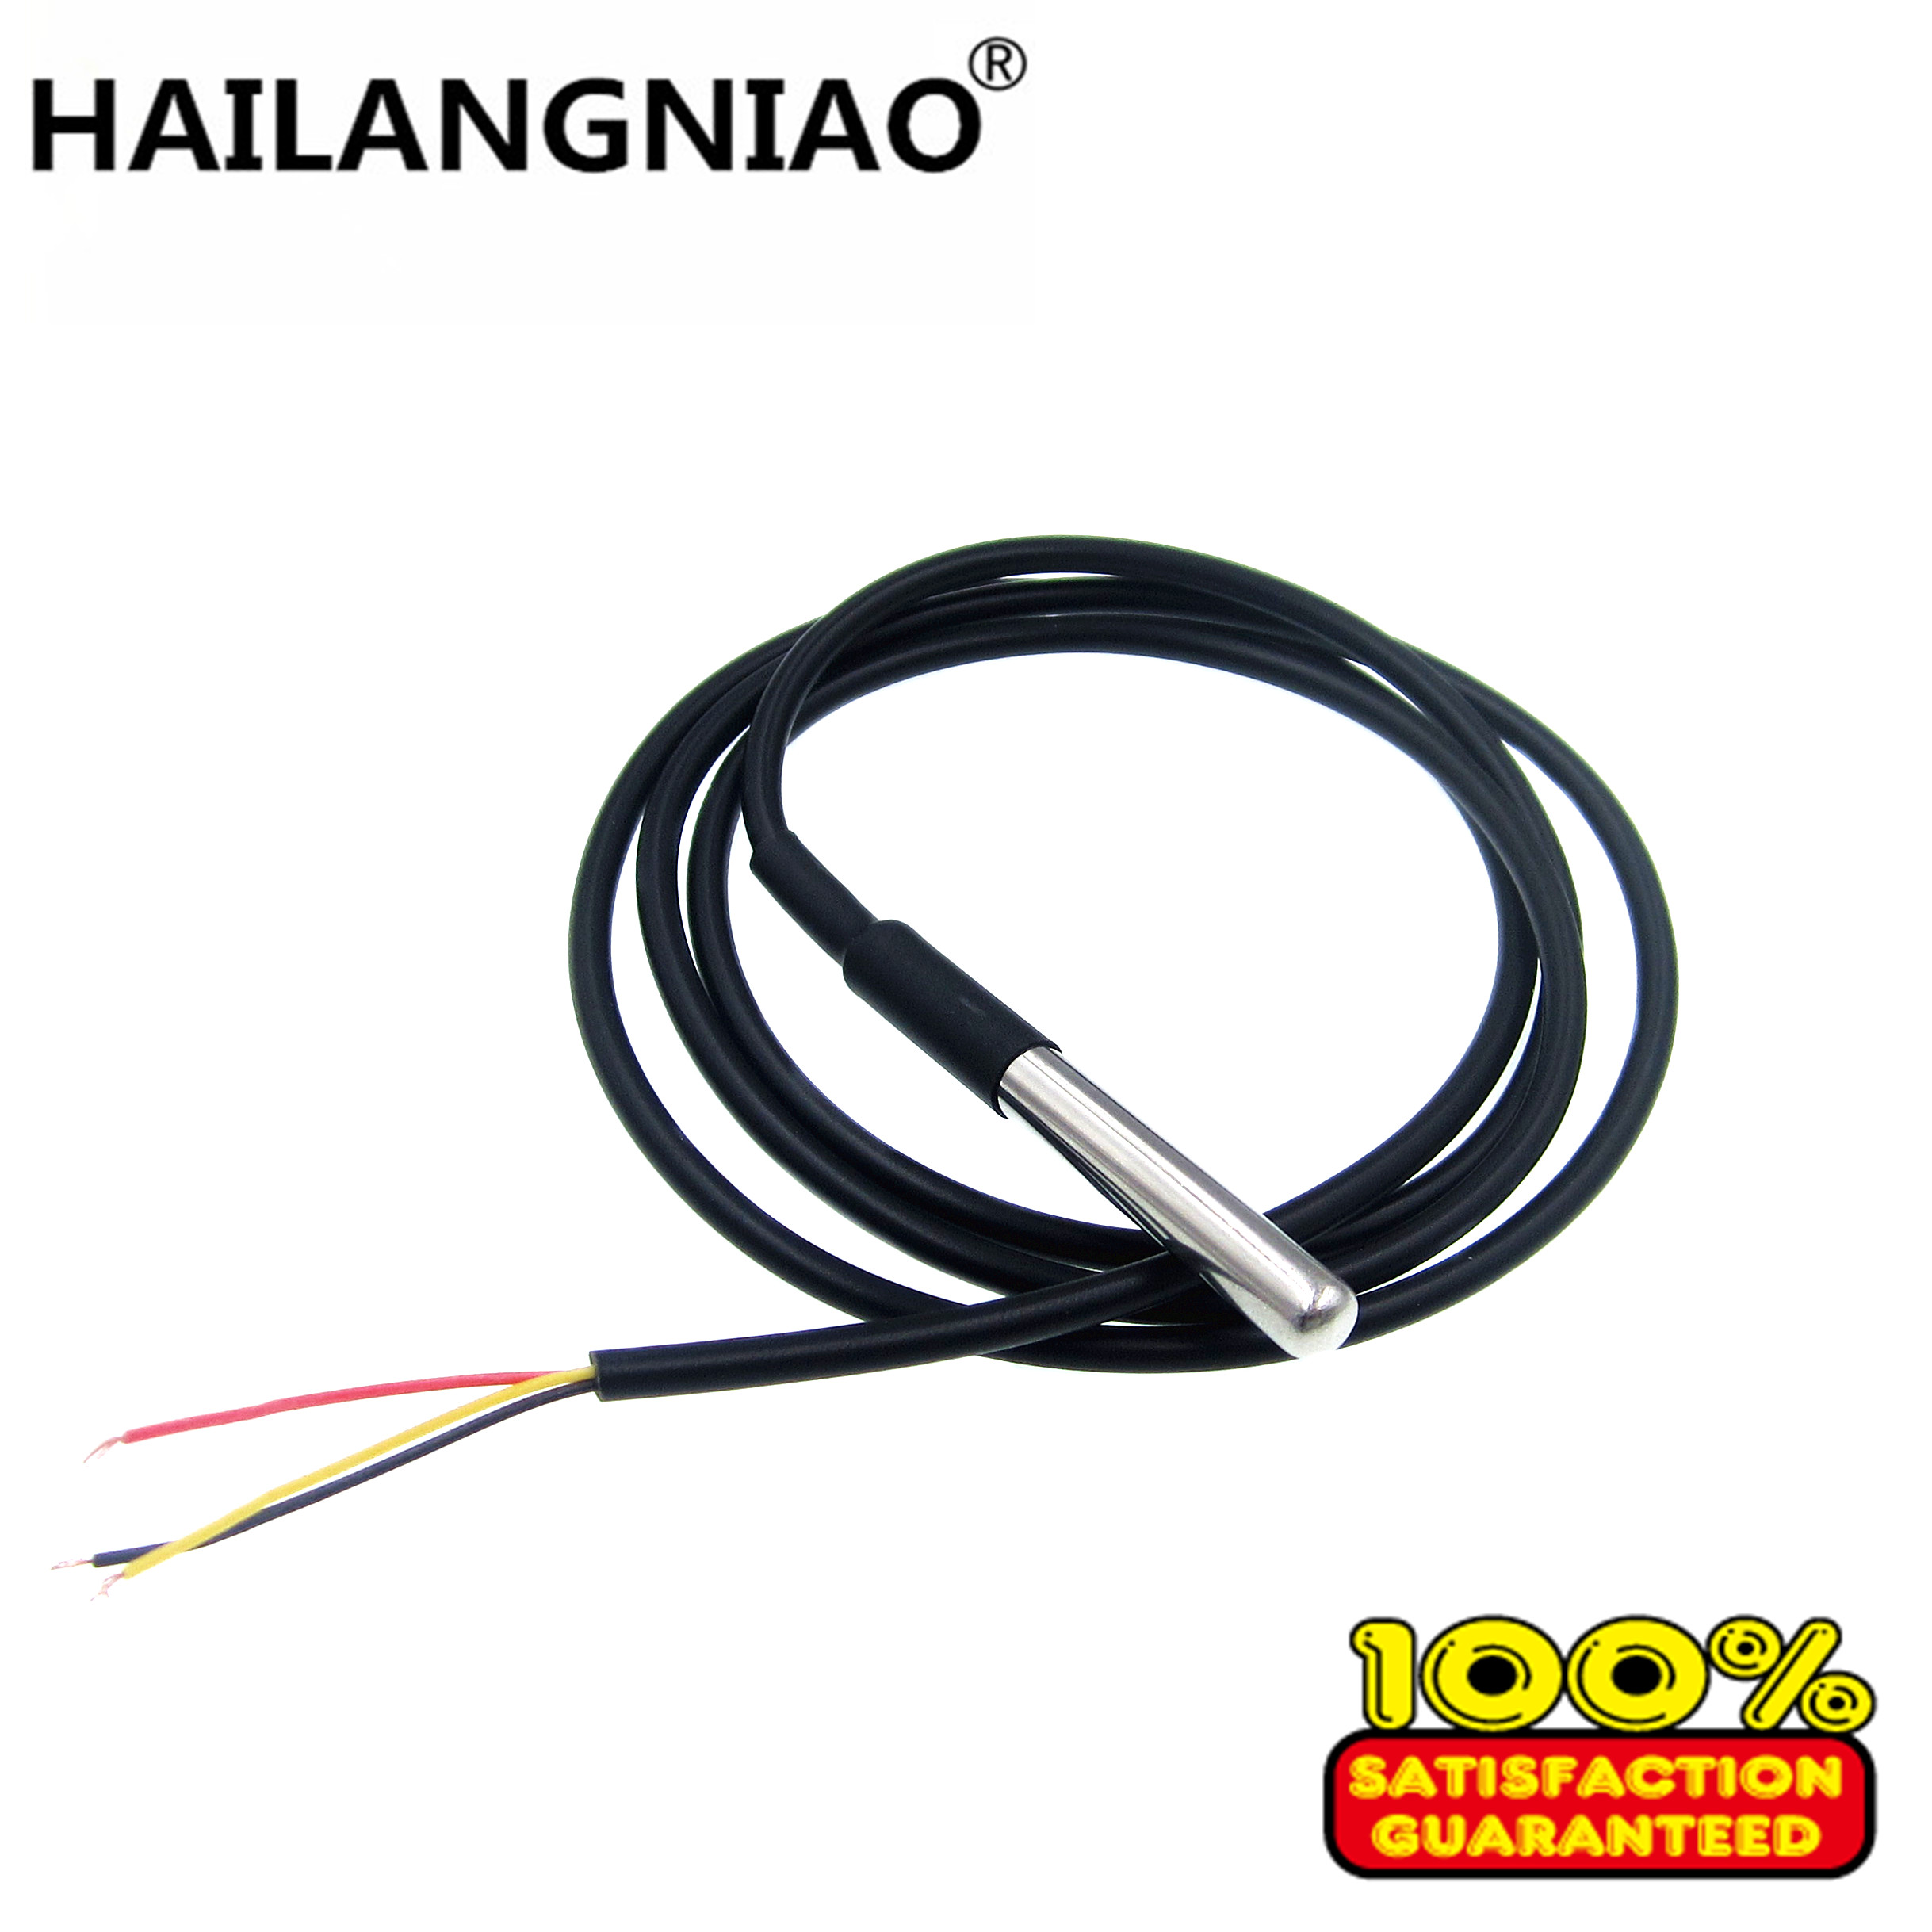 1pcs 1m DS18b20 Stainless Steel Package Waterproof DS18b20 Temperature Probe Temperature Sensor 18B20